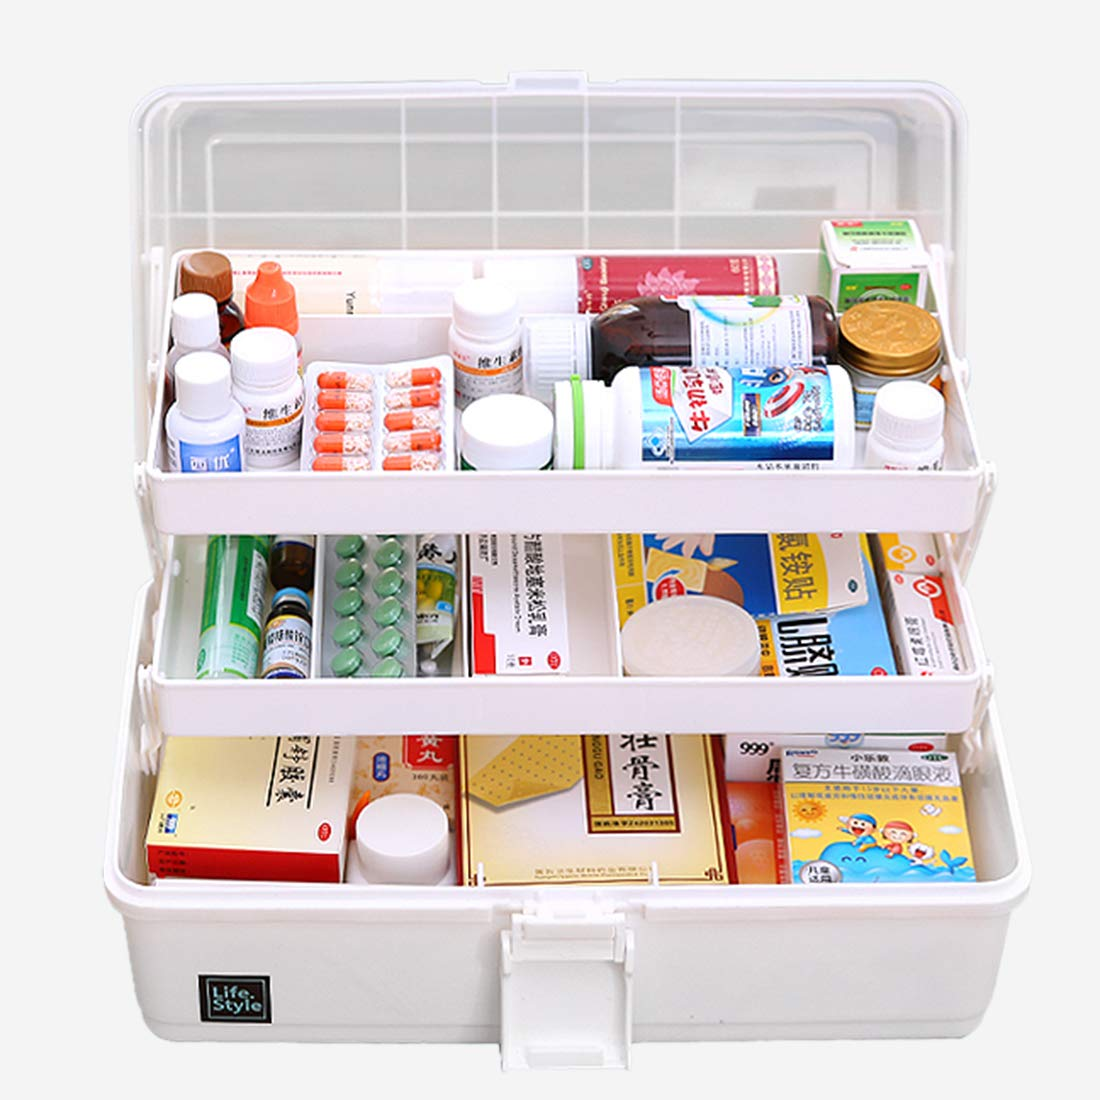 1 Pack Plastic Handle Storage Organizer 2 Layers with Compartments Bringer Clear First Aid Box